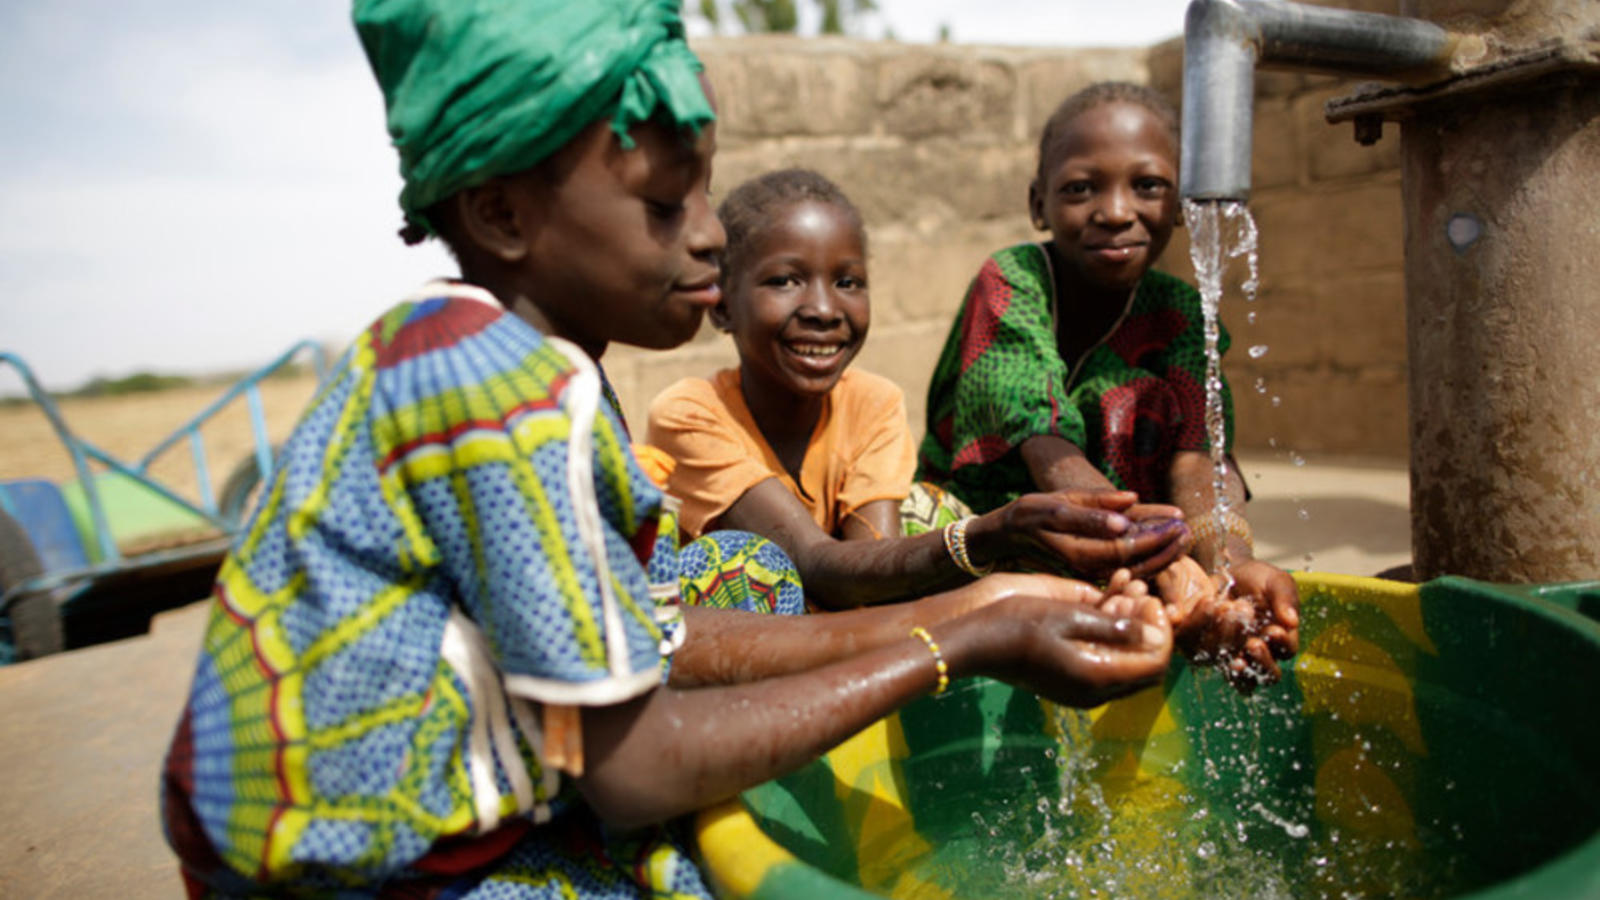 Children enjoying clean water in their village in Mali by splashing around in it.